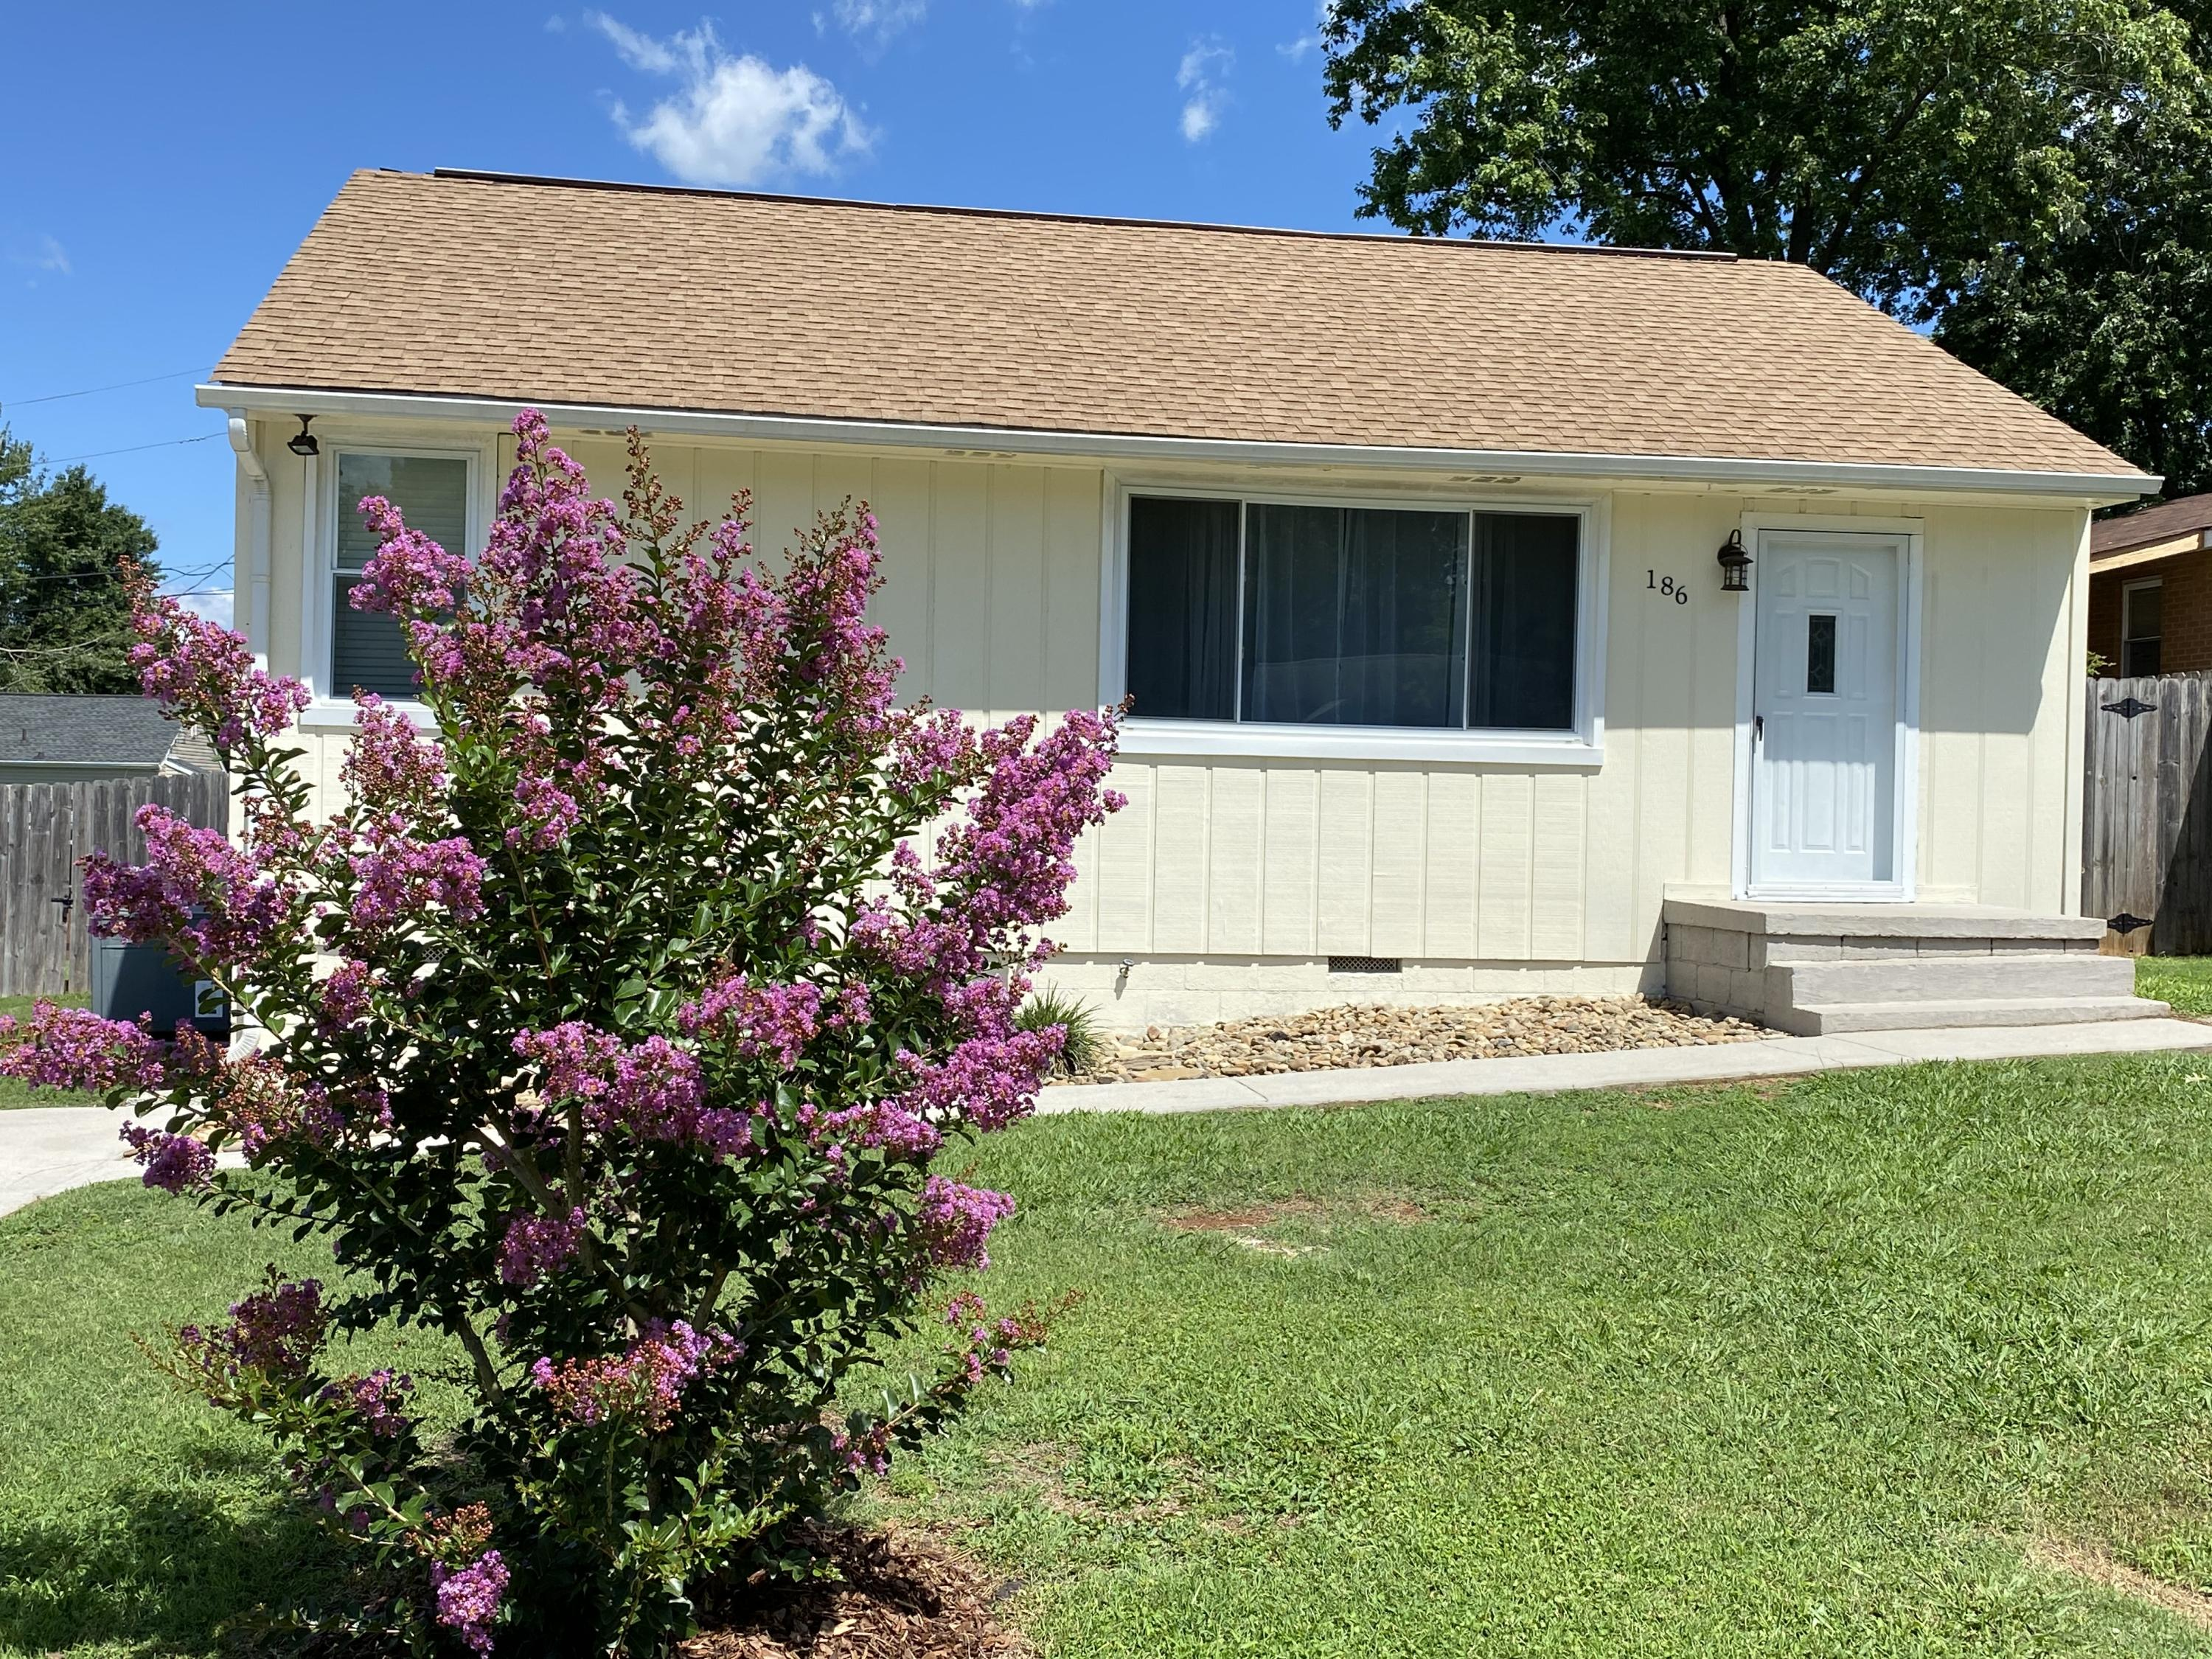 186 Fletcher, Maryville, Tennessee, United States 37804, 2 Bedrooms Bedrooms, ,1 BathroomBathrooms,Single Family,For Sale,Fletcher,1122951